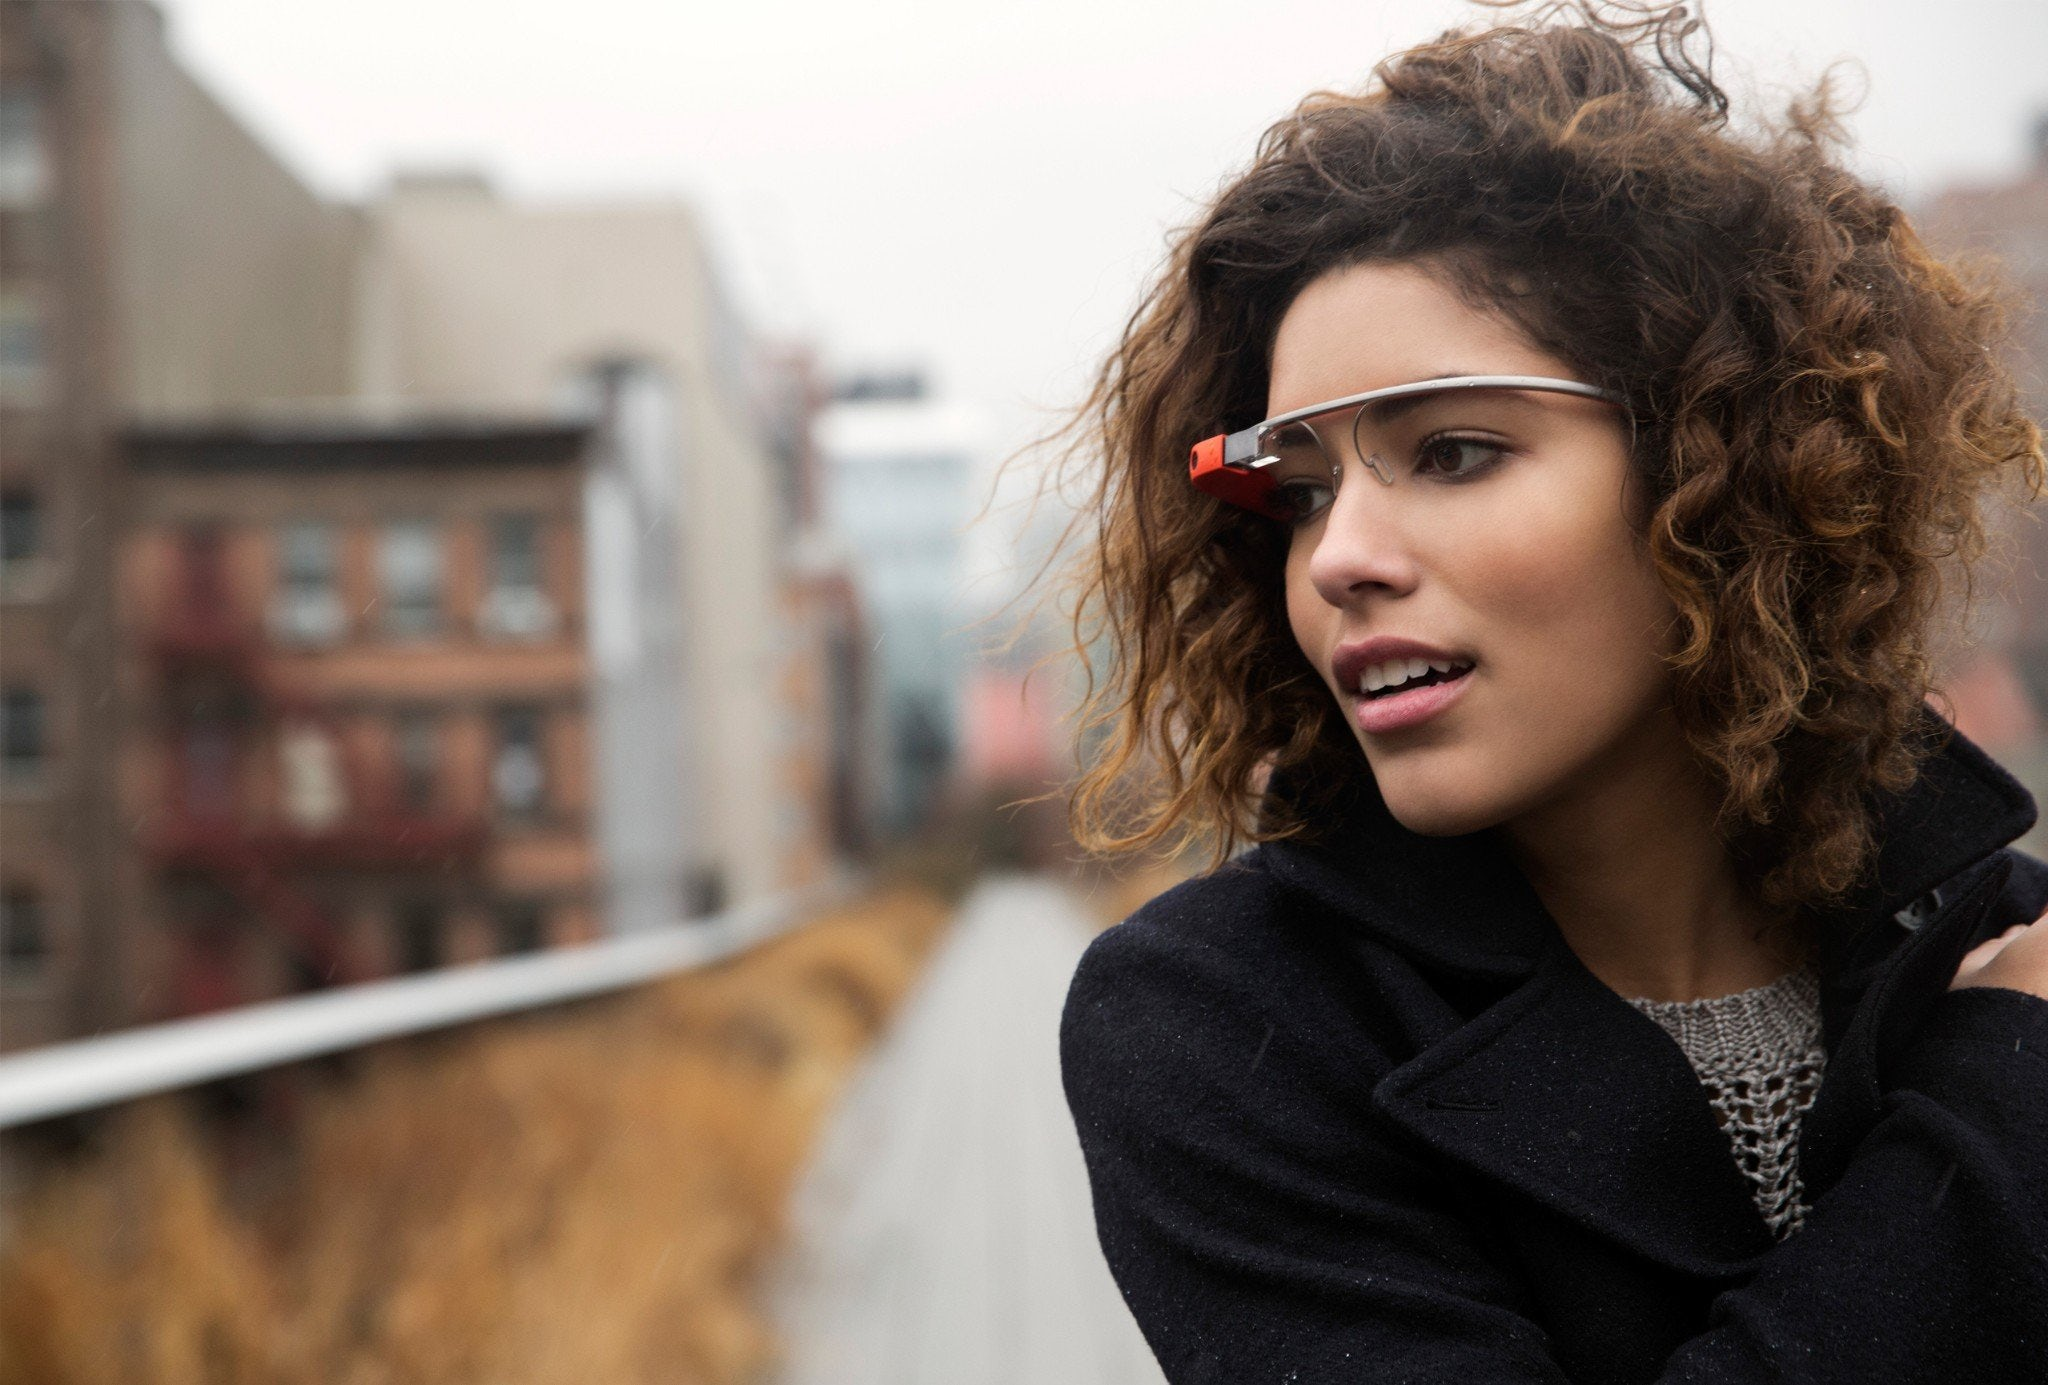 Fashion Brands Absent From Wearable Tech Revolution